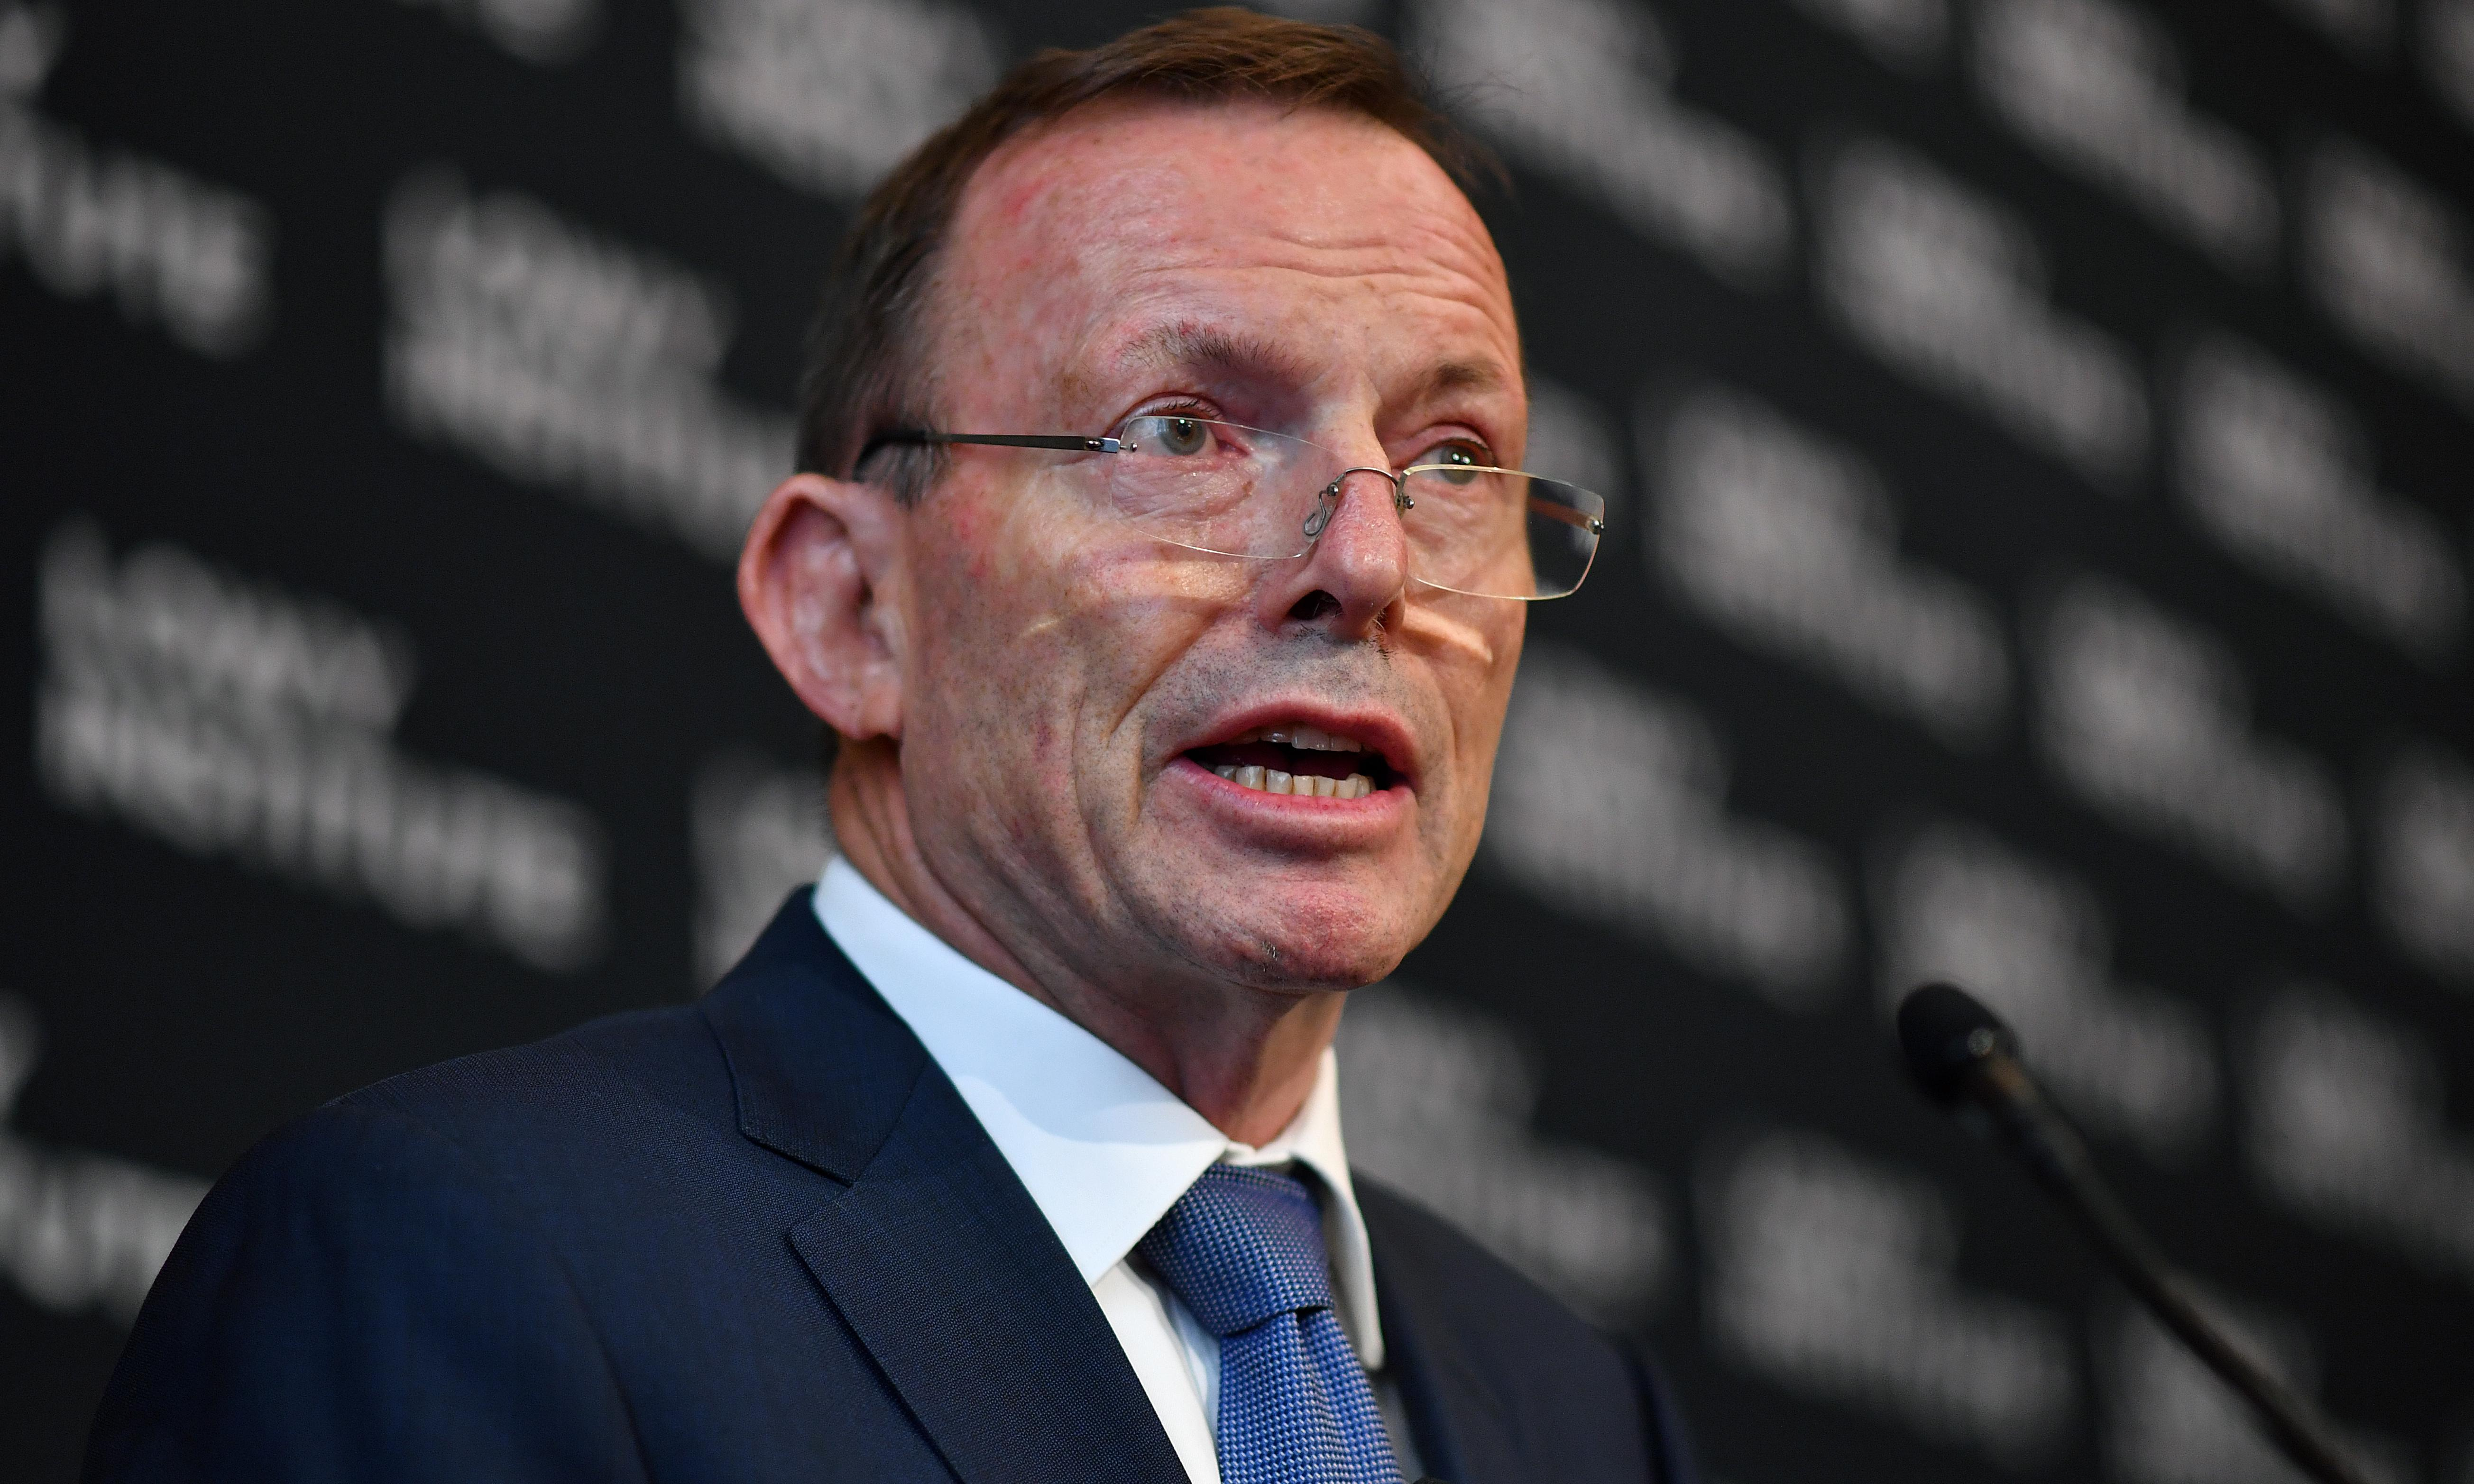 Tony Abbott: councils and sports clubs in former PM's seat received $1m in grants